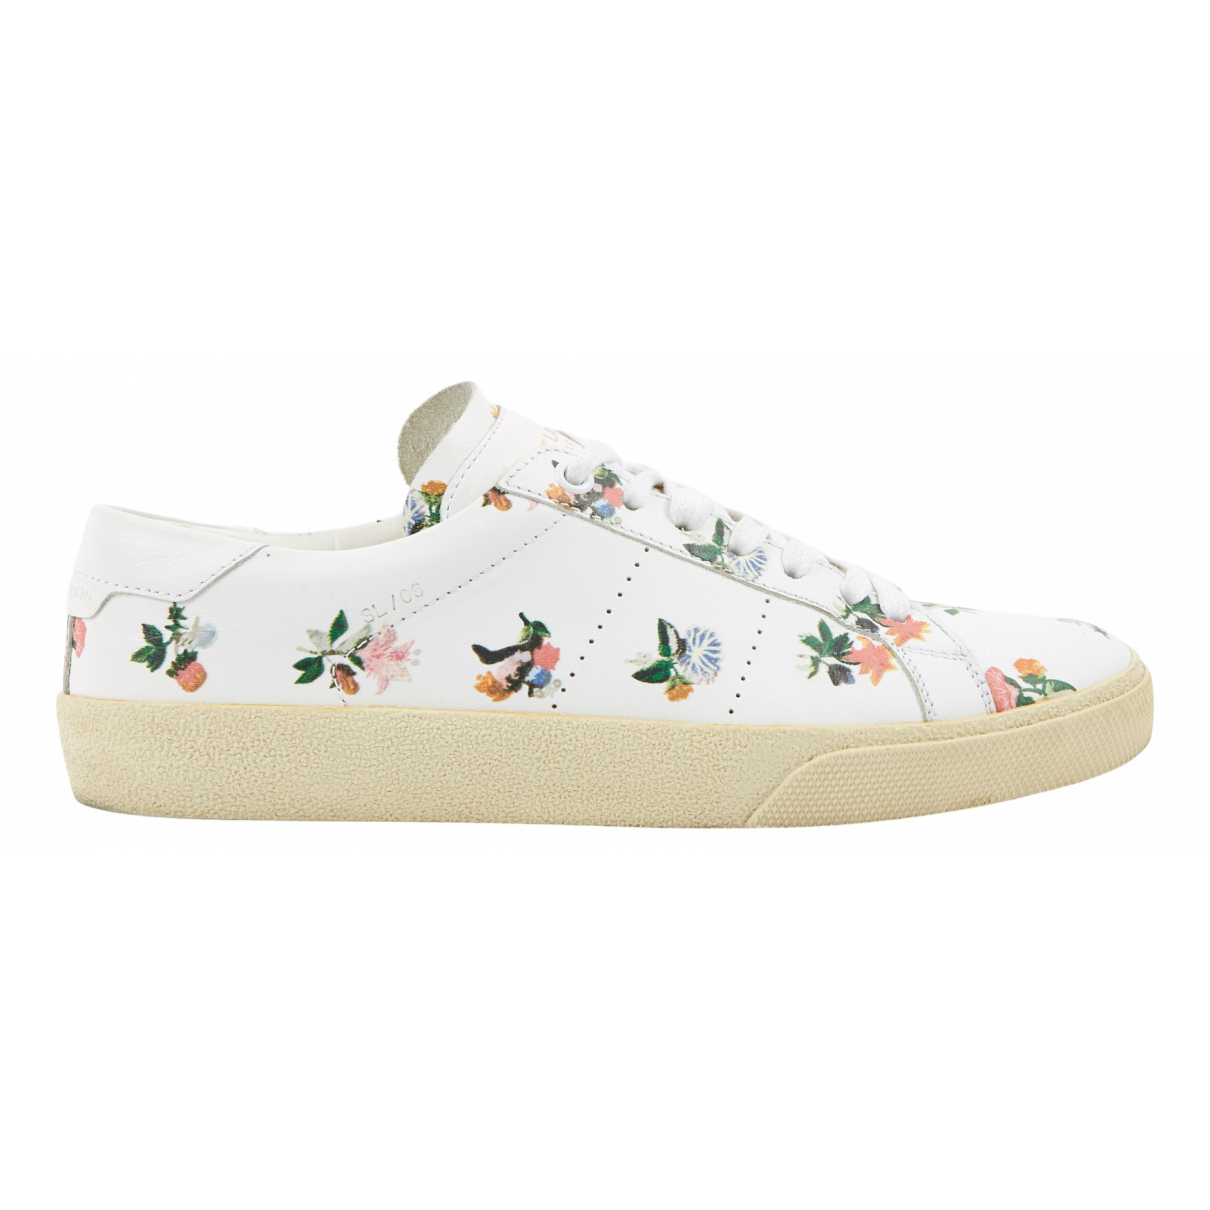 Saint Laurent N White Leather Trainers for Women 37 EU